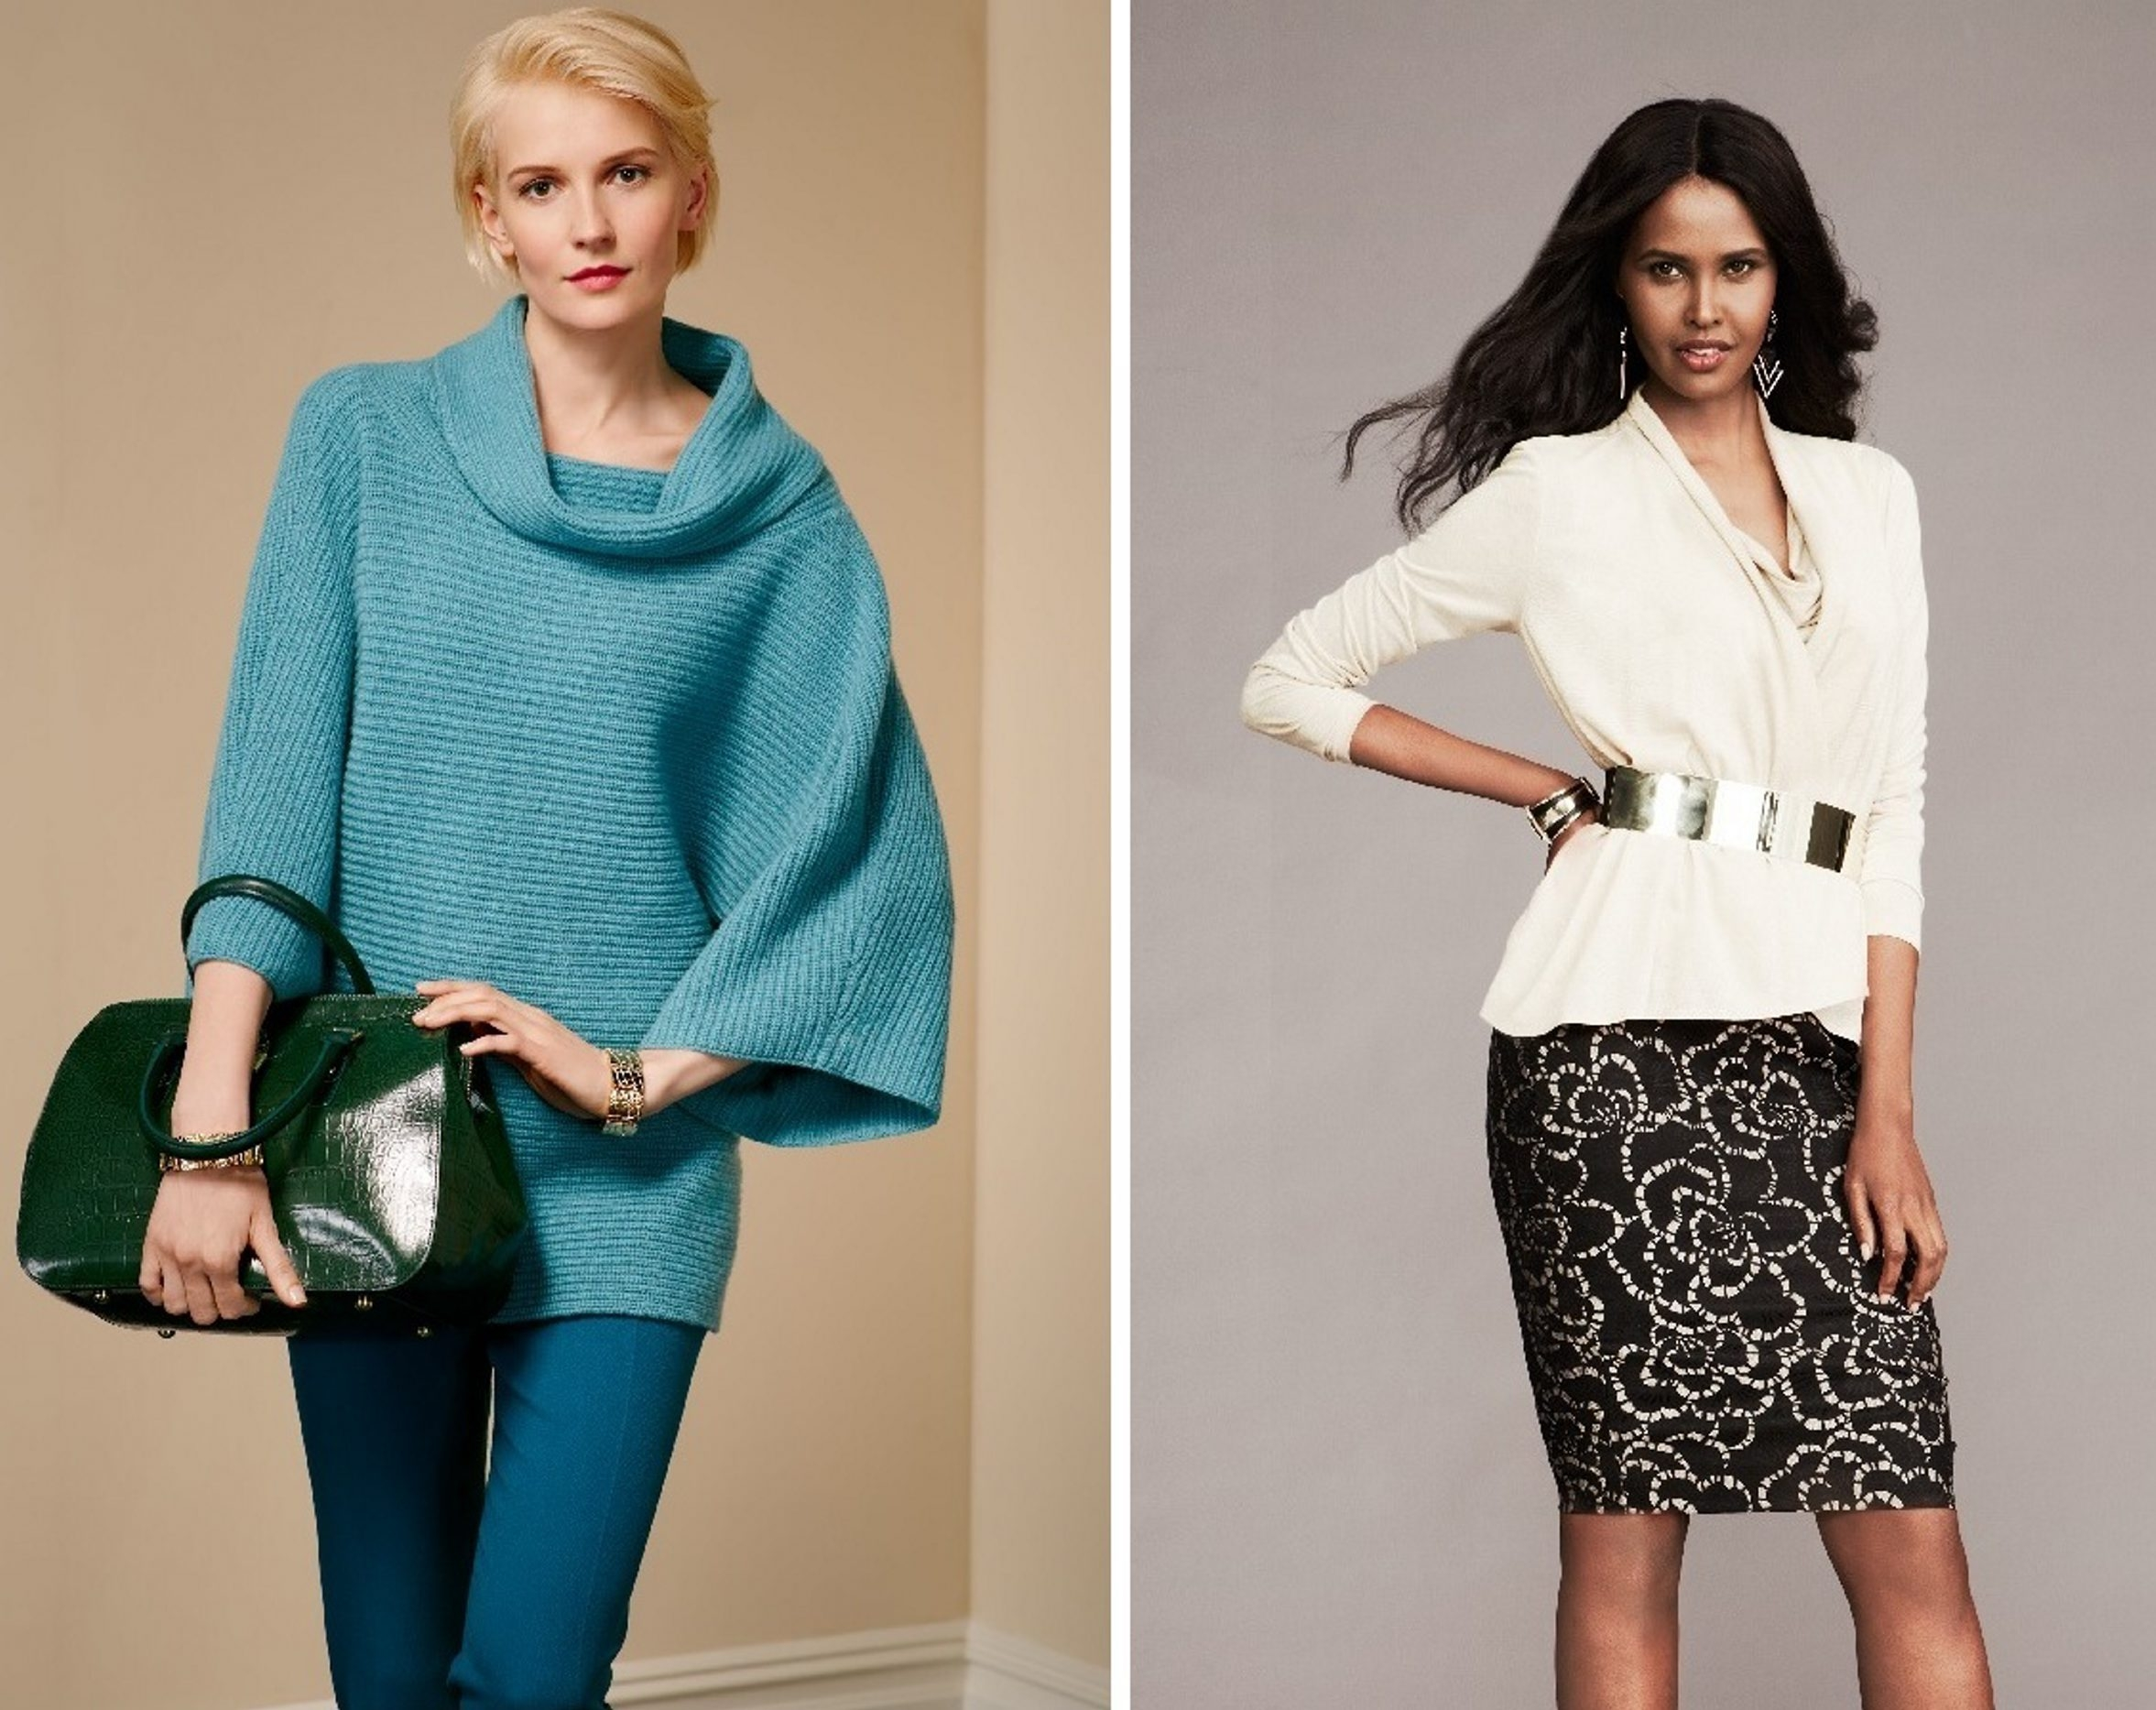 Styles for fall include the cowl neck from Talbots and a sweater jacket from Macy's.